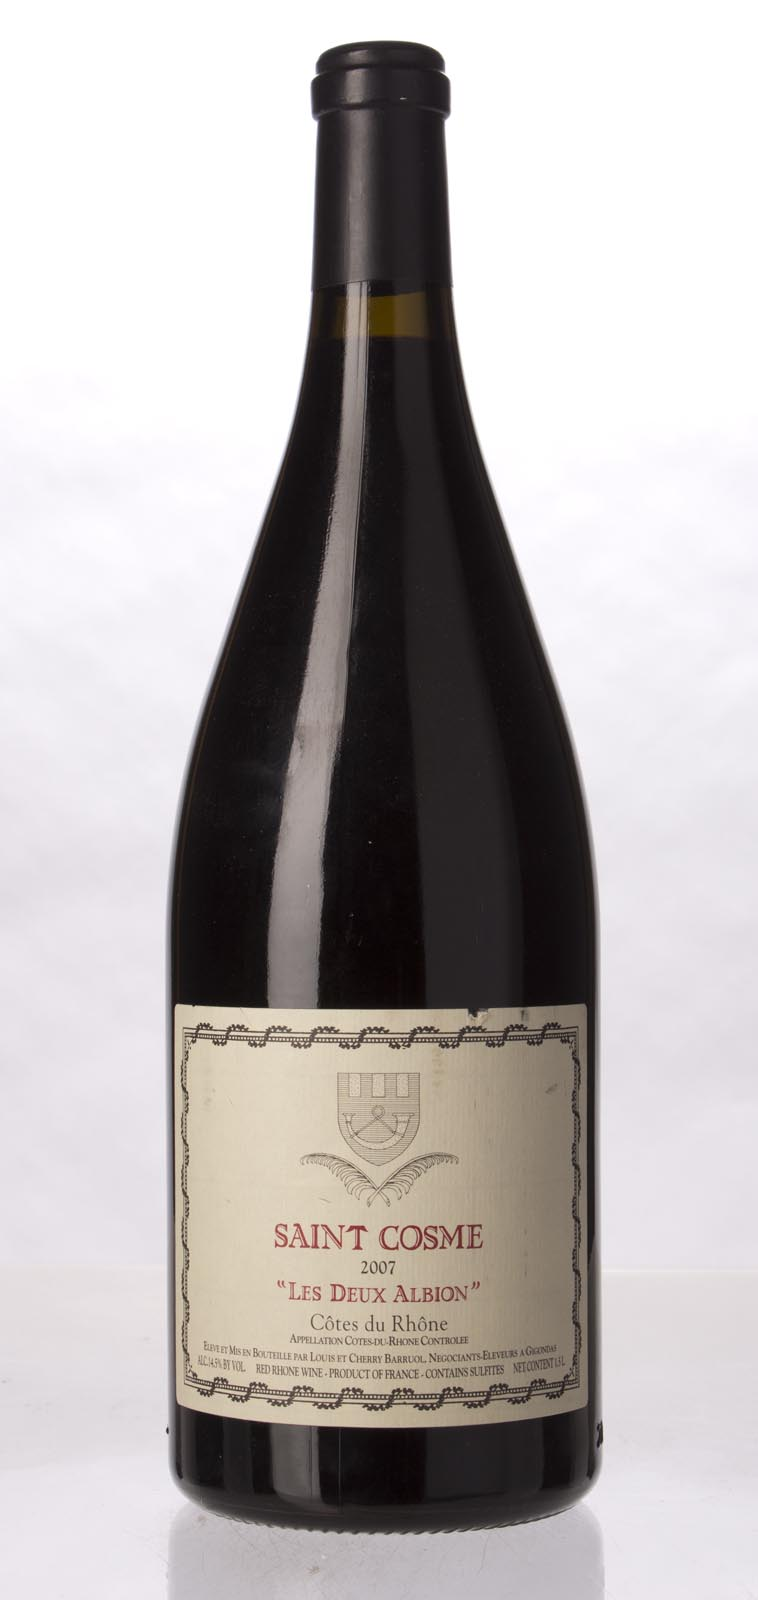 Chateau de Saint Cosme Cotes du Rhone les Deux Albions 2007, 1.5L (WA90, WS90) from The BPW - Merchants of rare and fine wines.